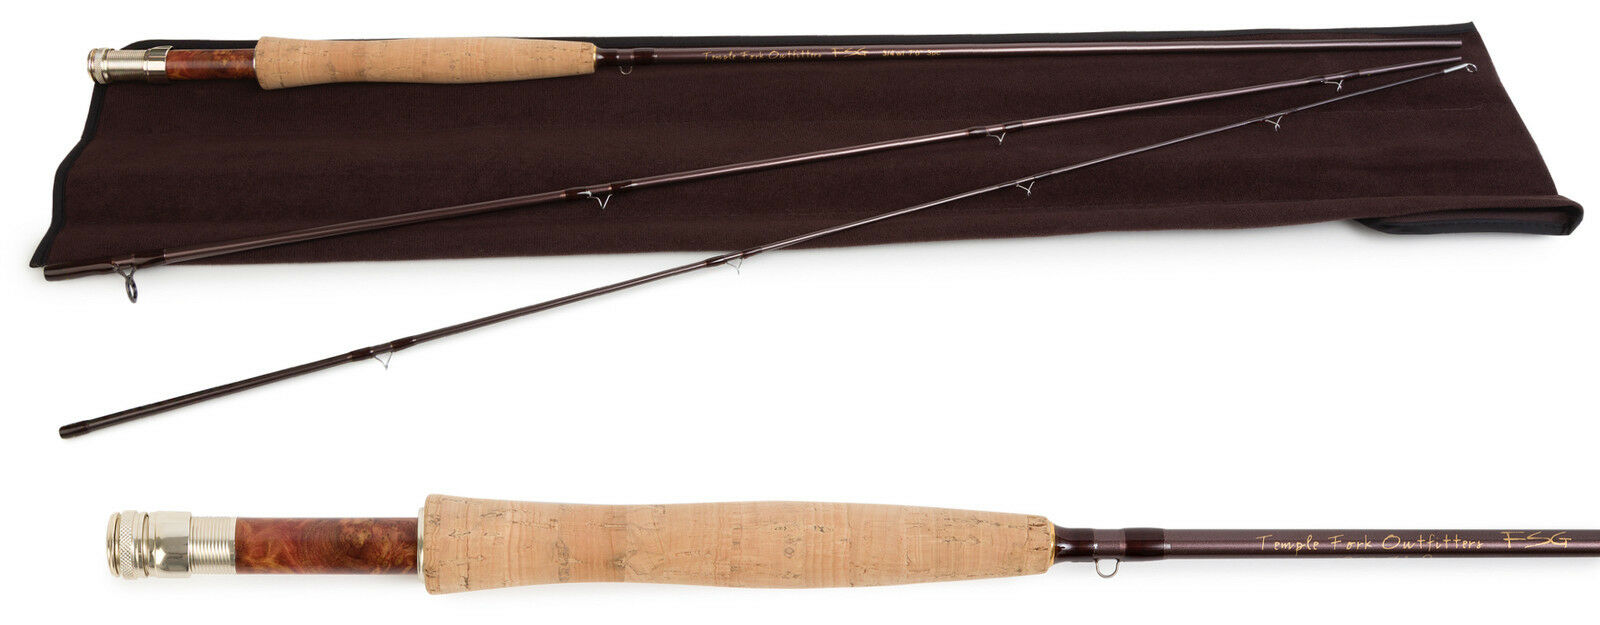 Temple Fork Finesse Glass Fly Rod 4-5 wt. 7'6  3 pc.